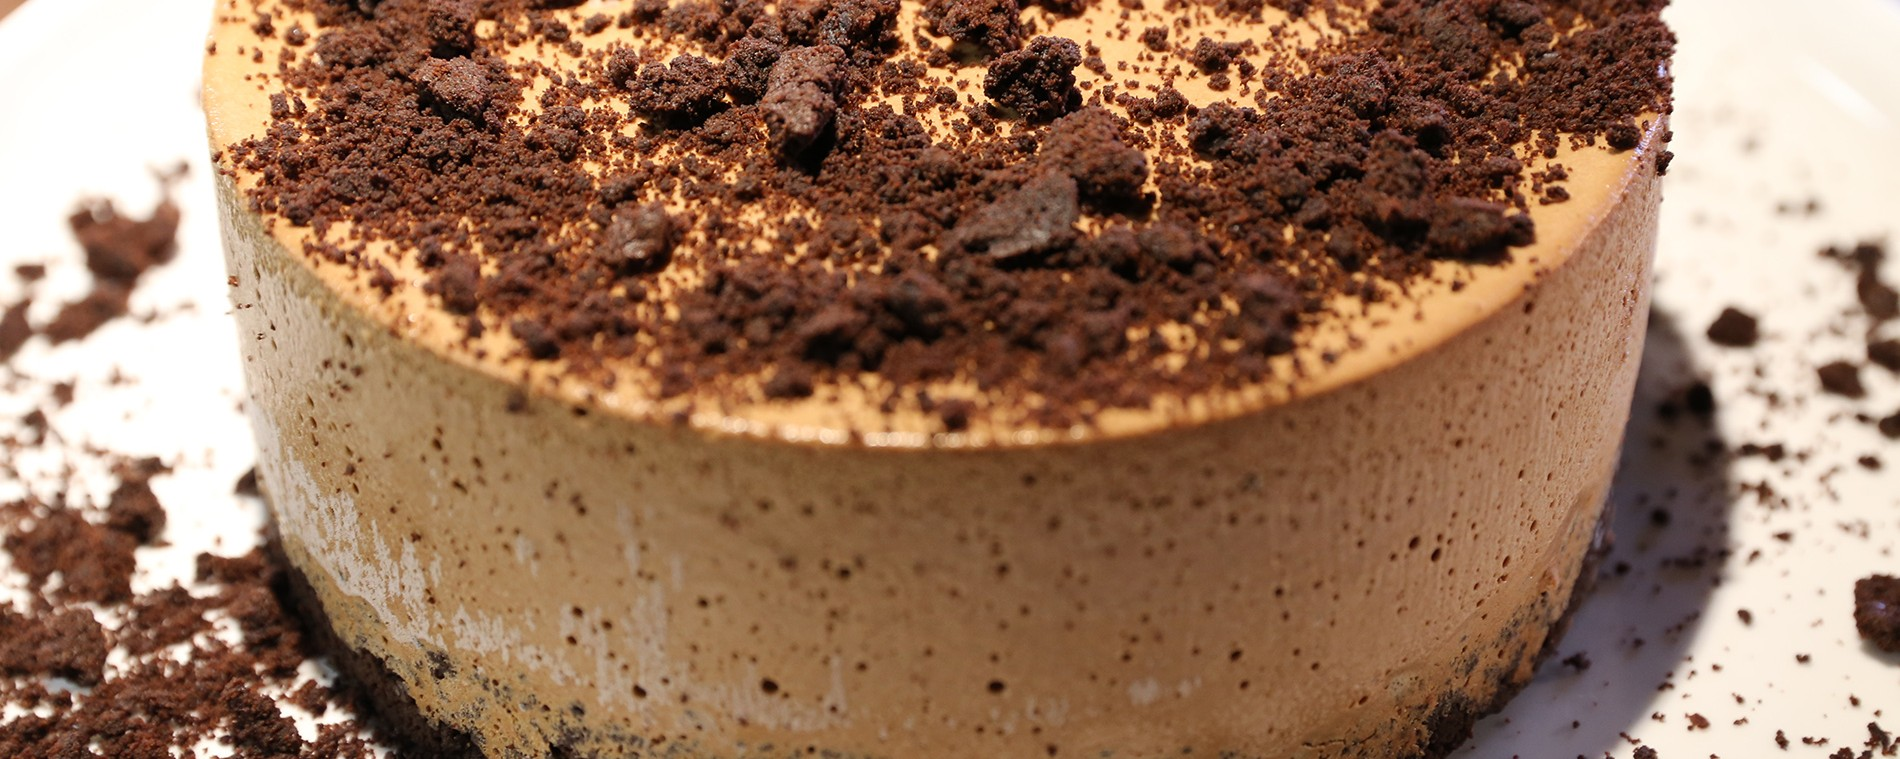 How-To: Make Not-Your-Mama's Chocolate Cake with Gregory Baumgartner